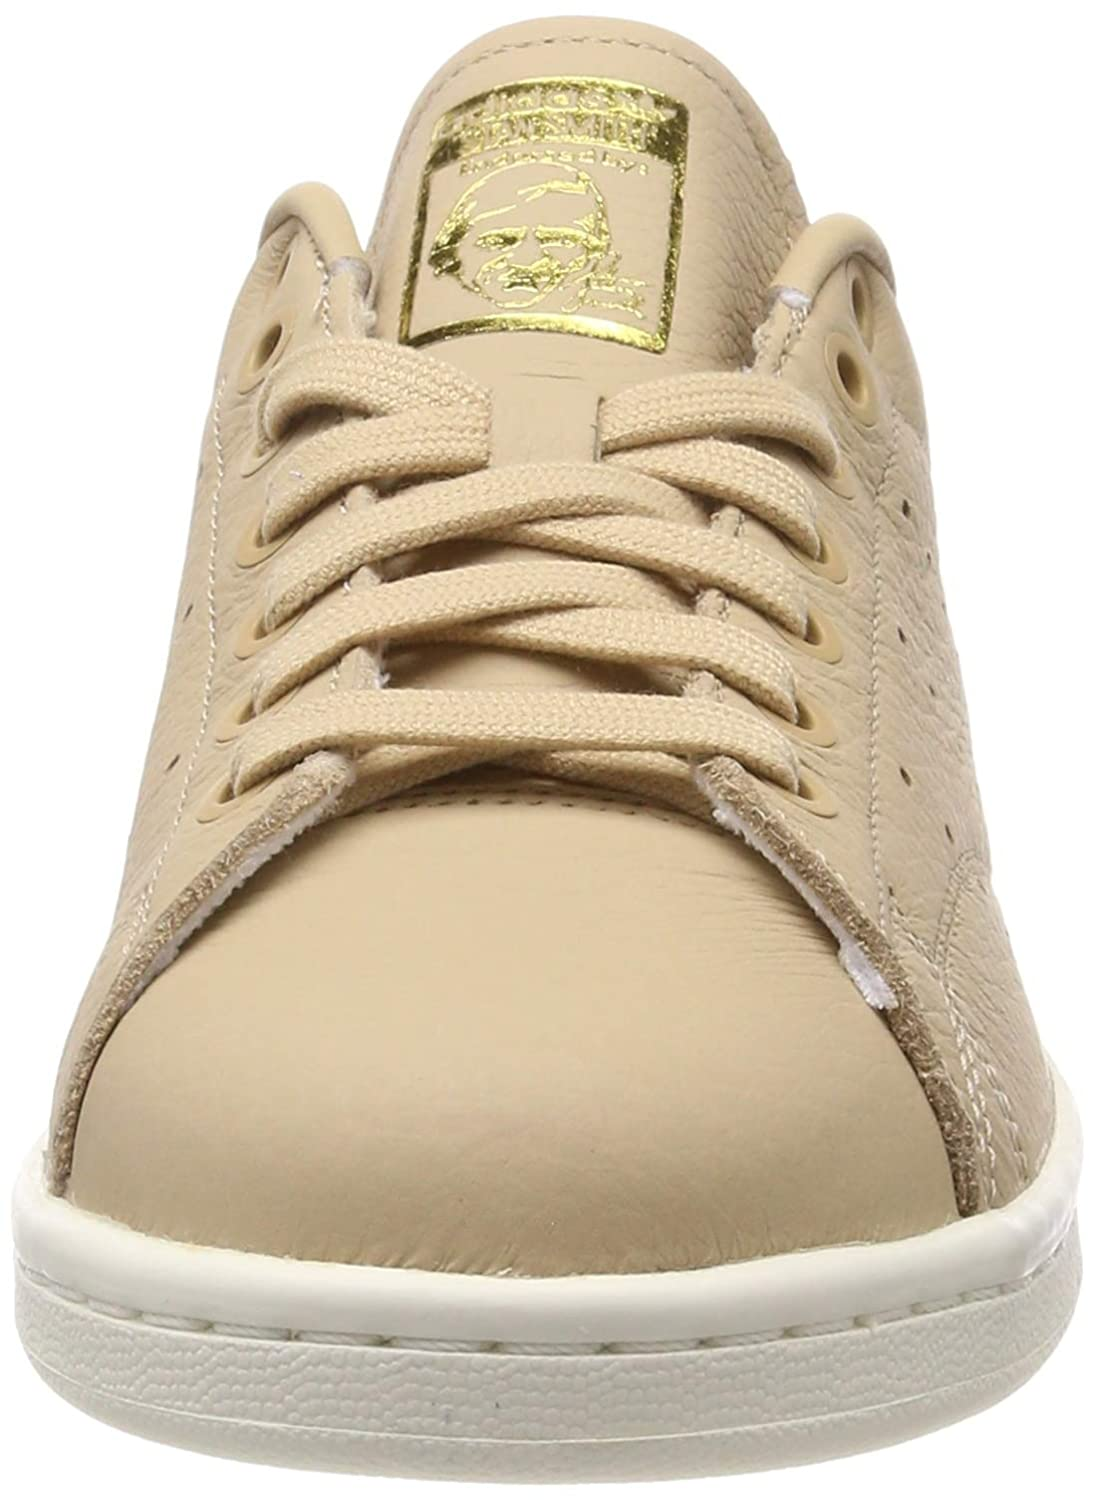 best sneakers 2c69f 7f6a4 adidas Stan Smith W, Chaussures de Fitness Femme